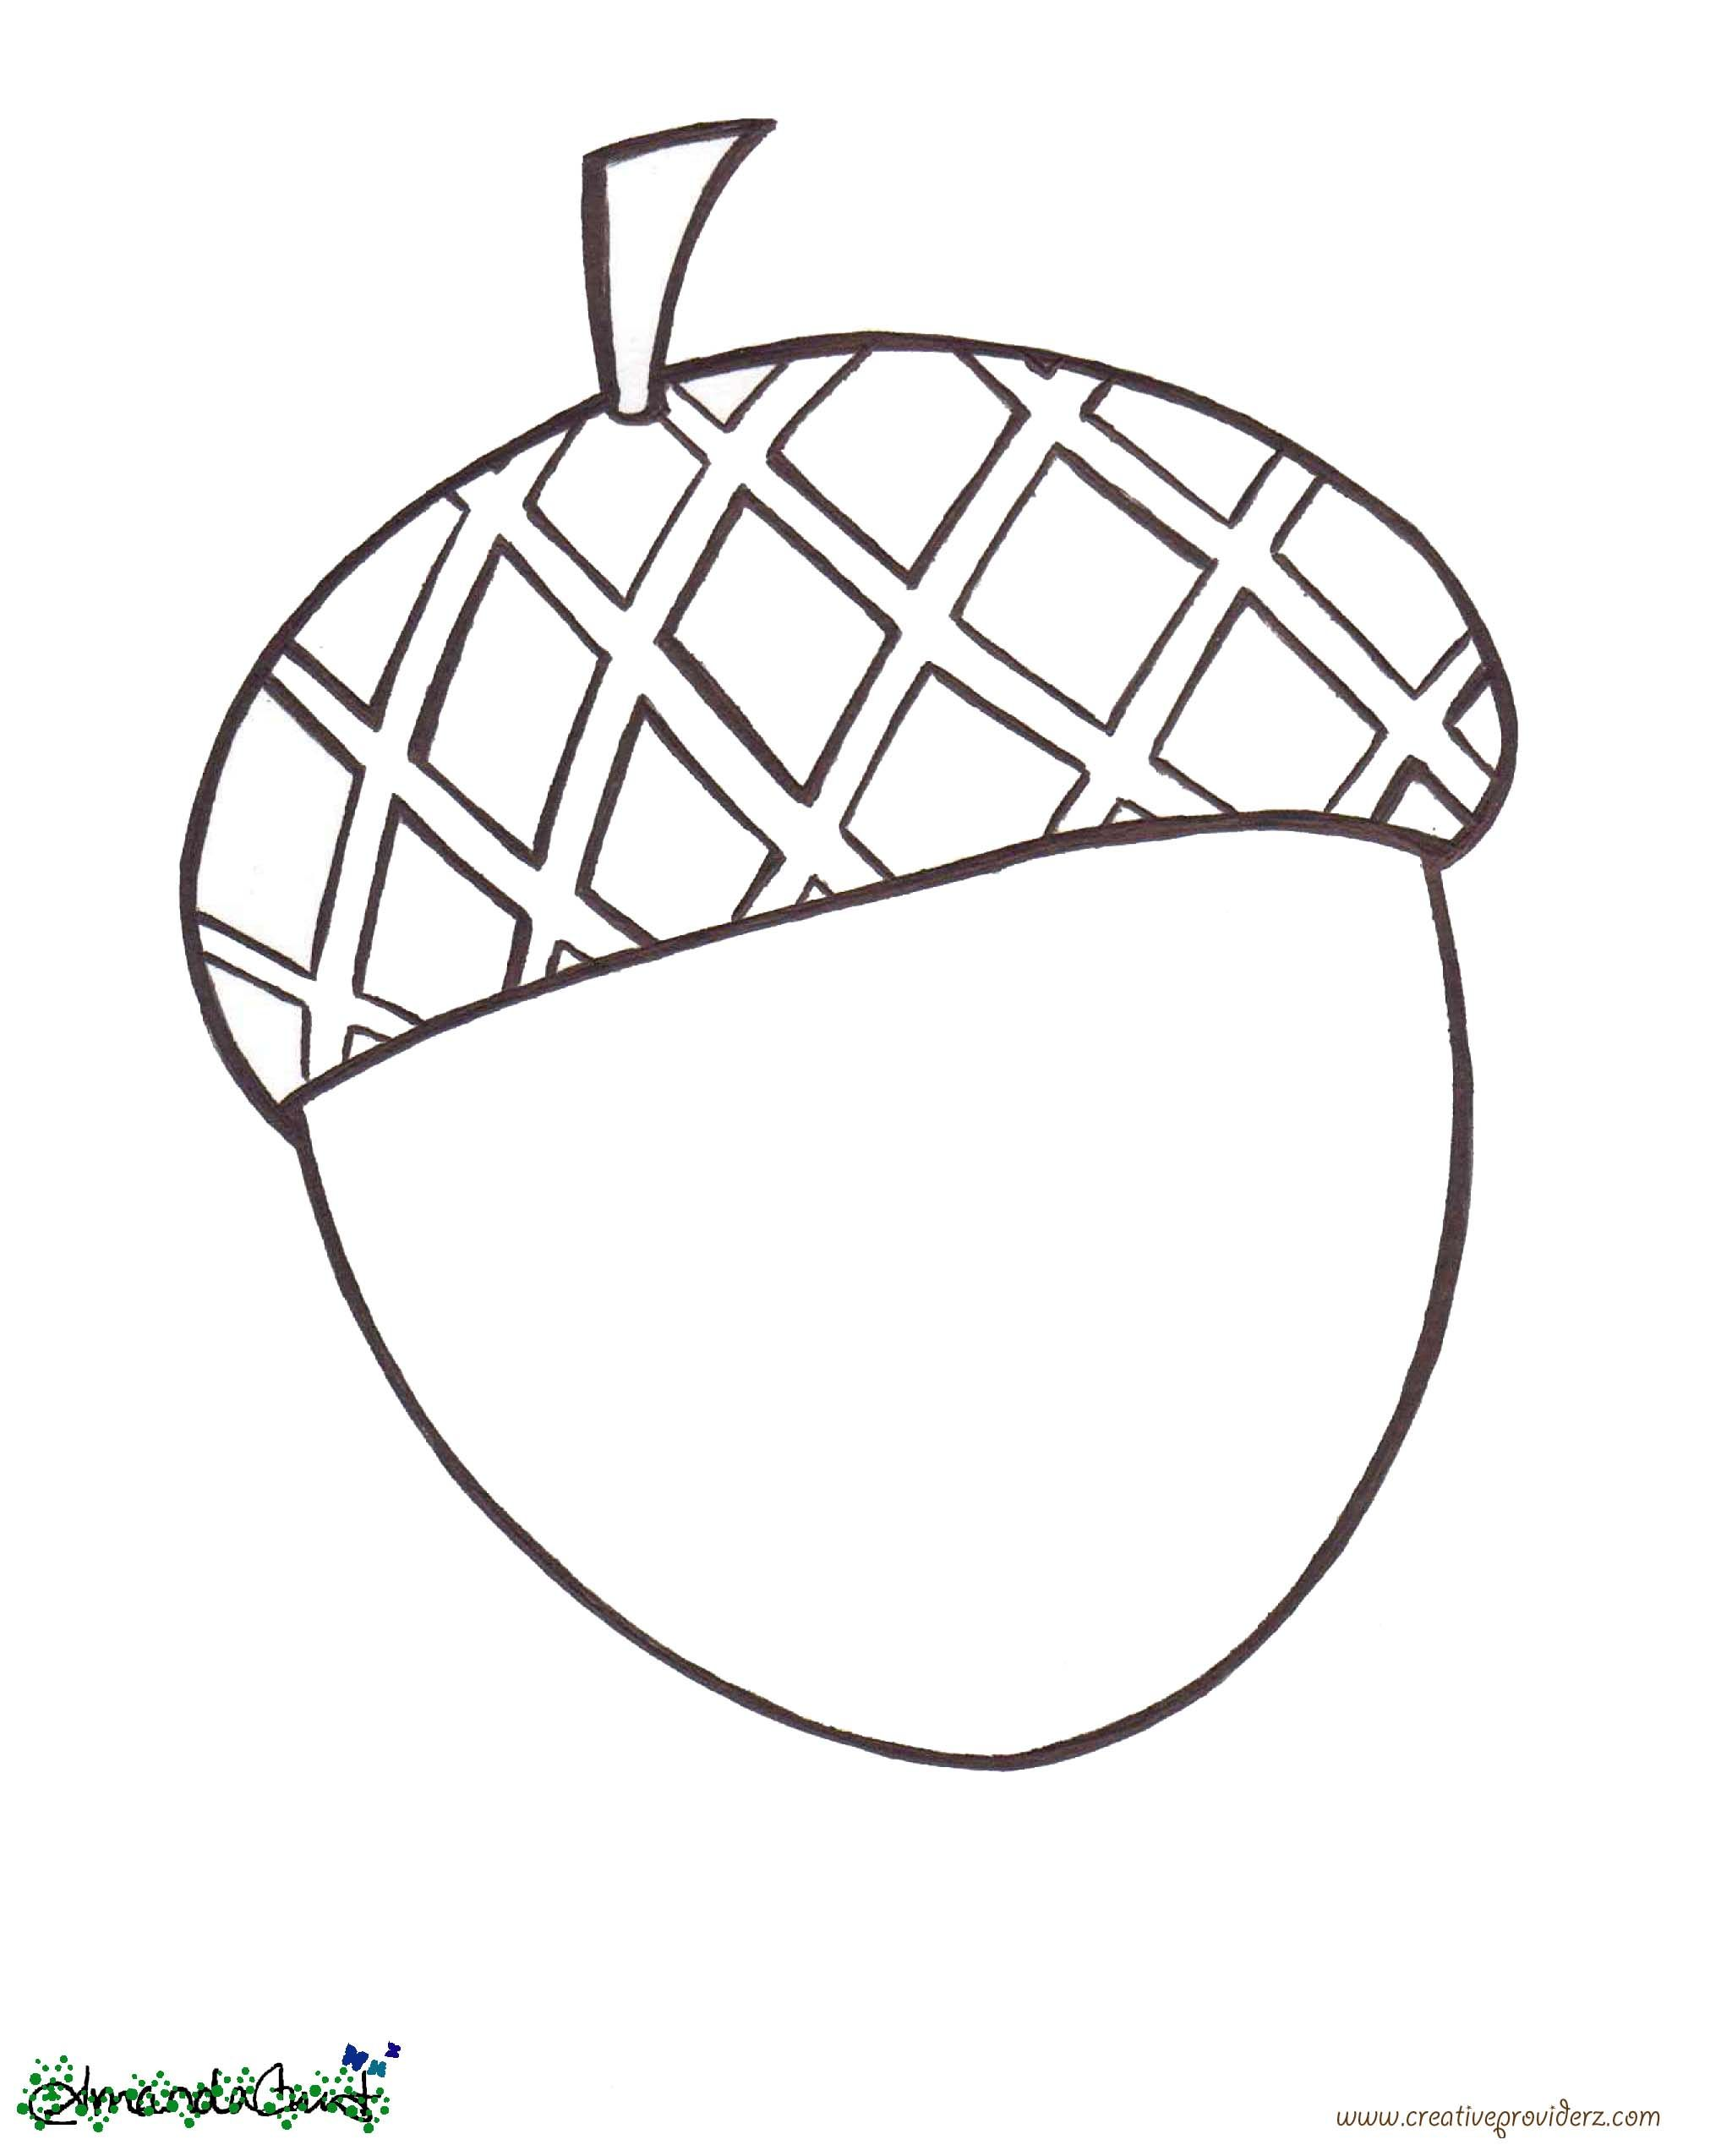 acorn coloring pages - creative providerz alphabet a coloring sheets